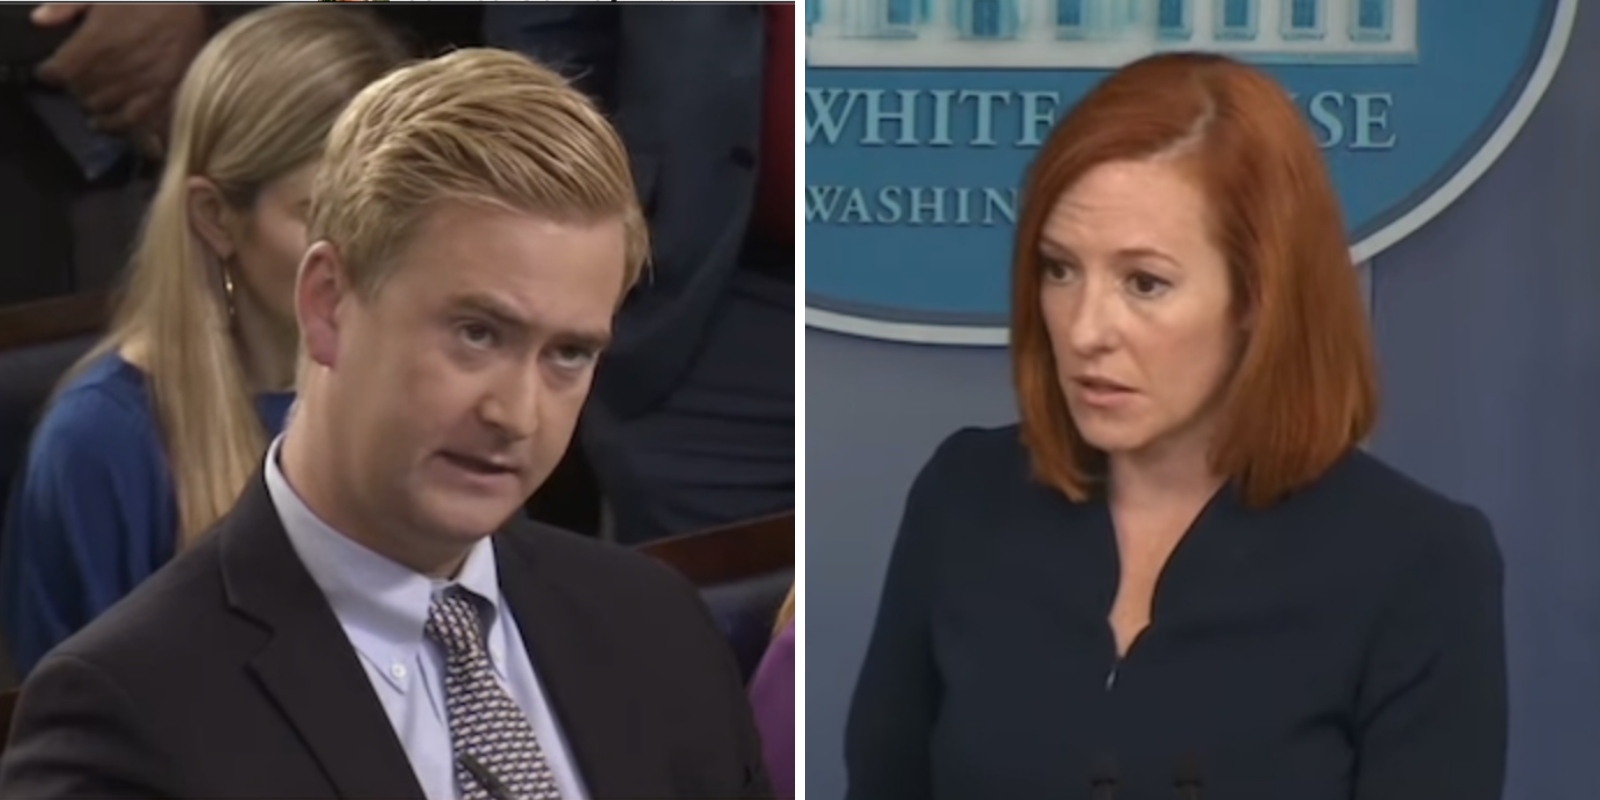 WATCH: White House says they are implementing a 'community violence intervention collaborative' in response to DC shooting